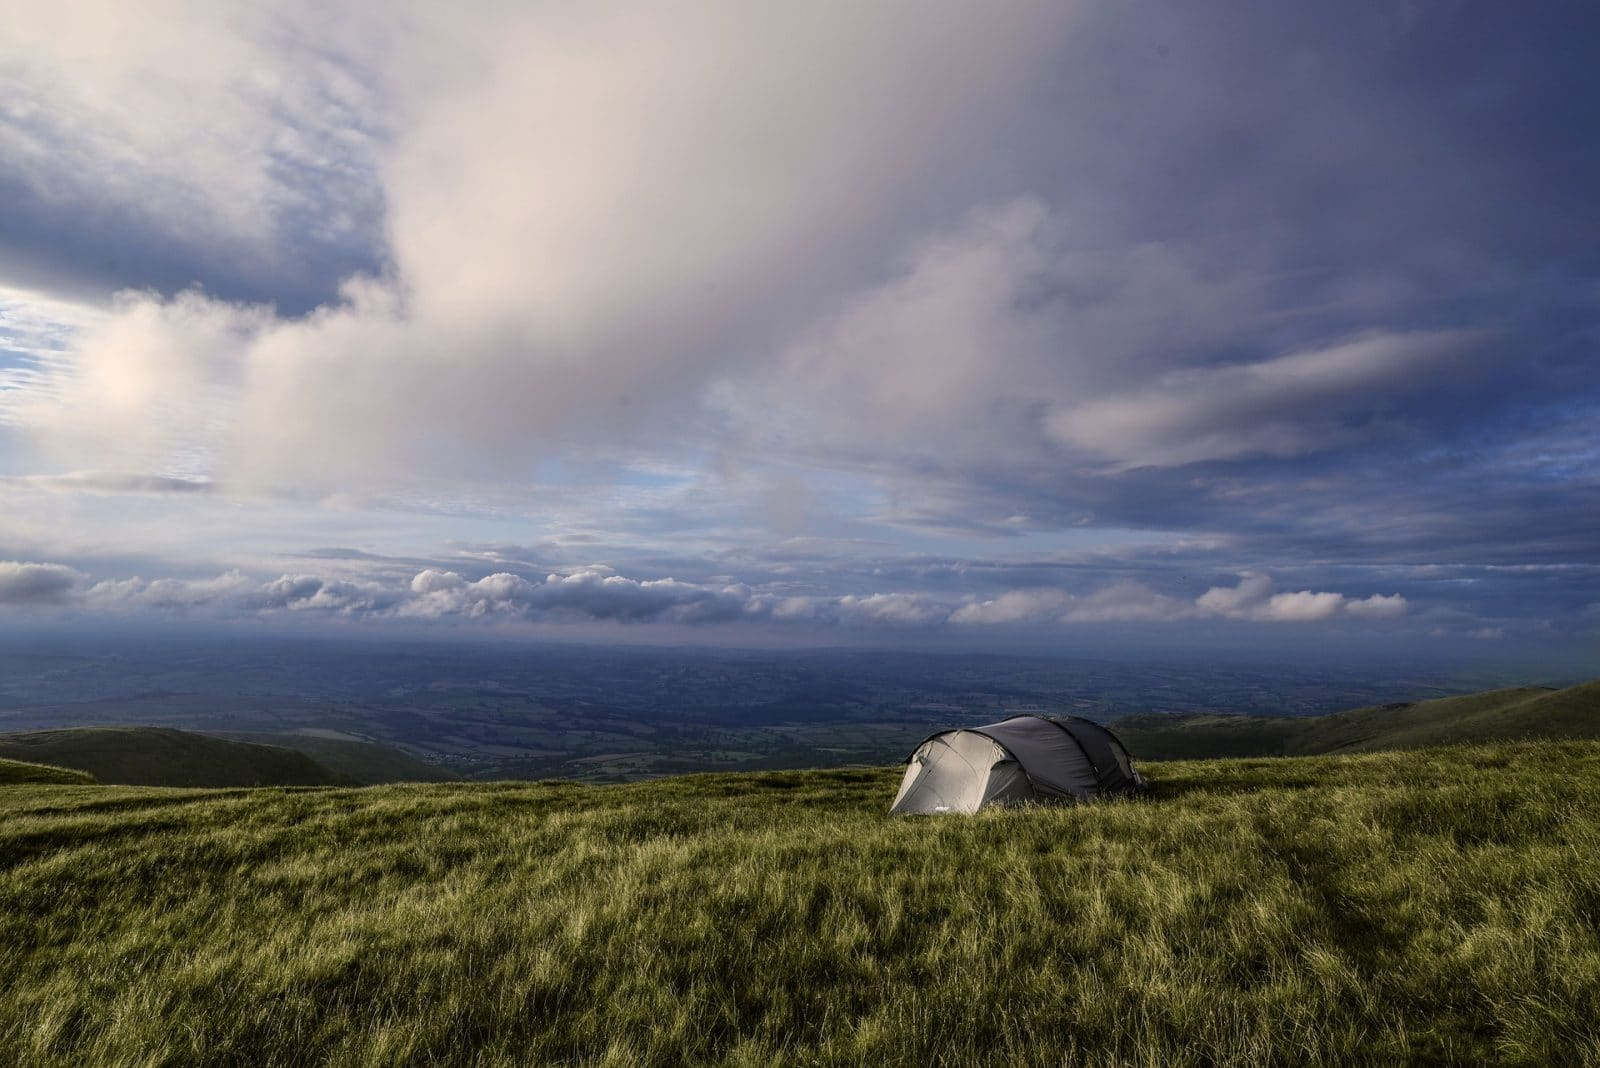 Hiking trips in the Brecon Beacons